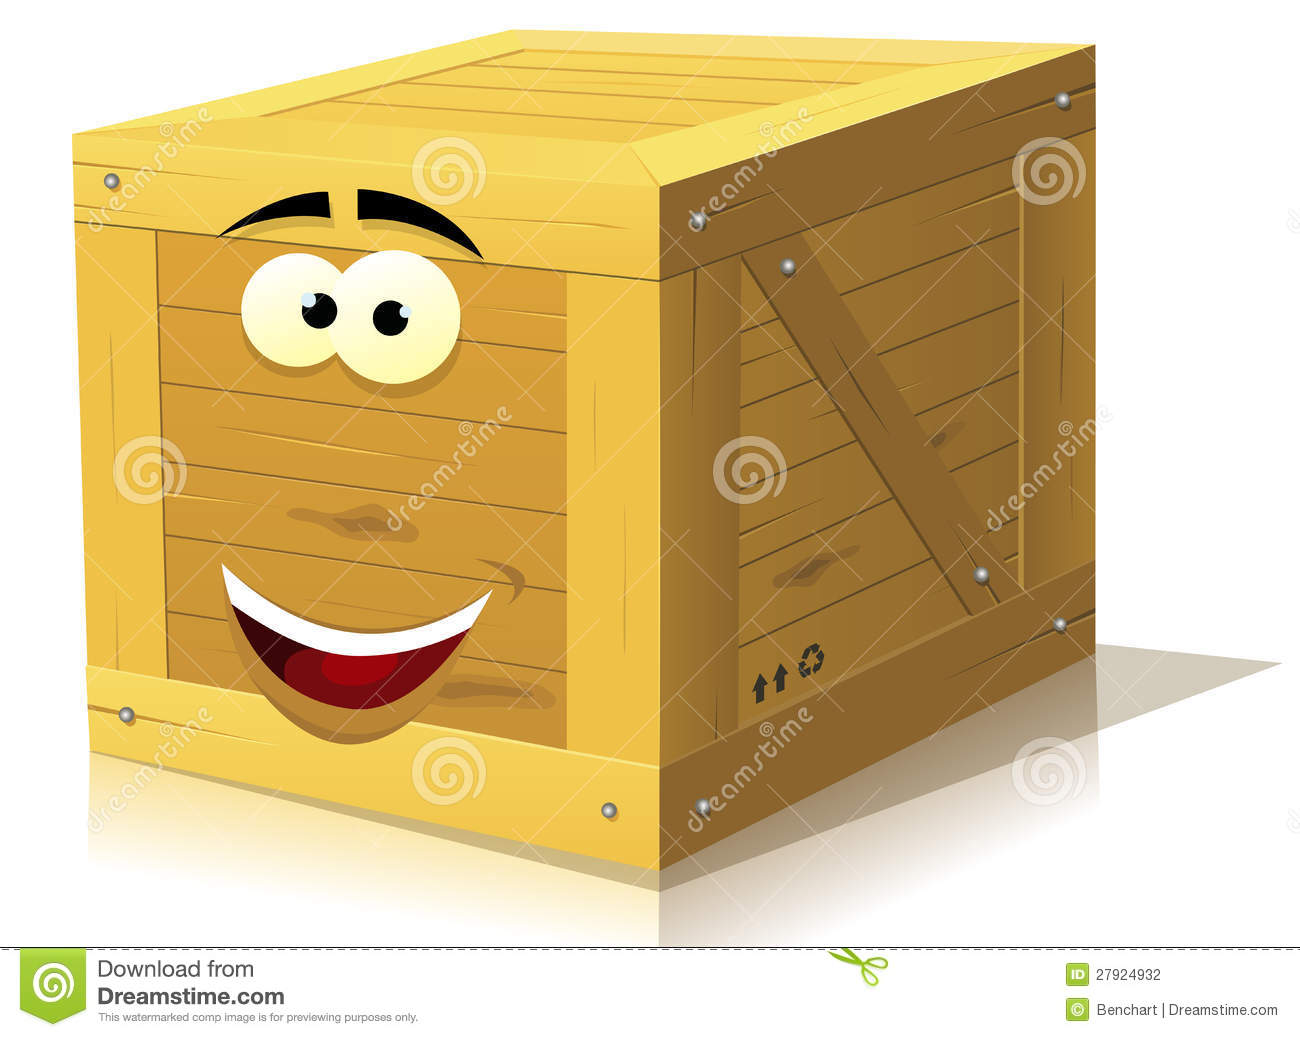 Illustration of a funny cartoon wooden box character happy and smiling ...